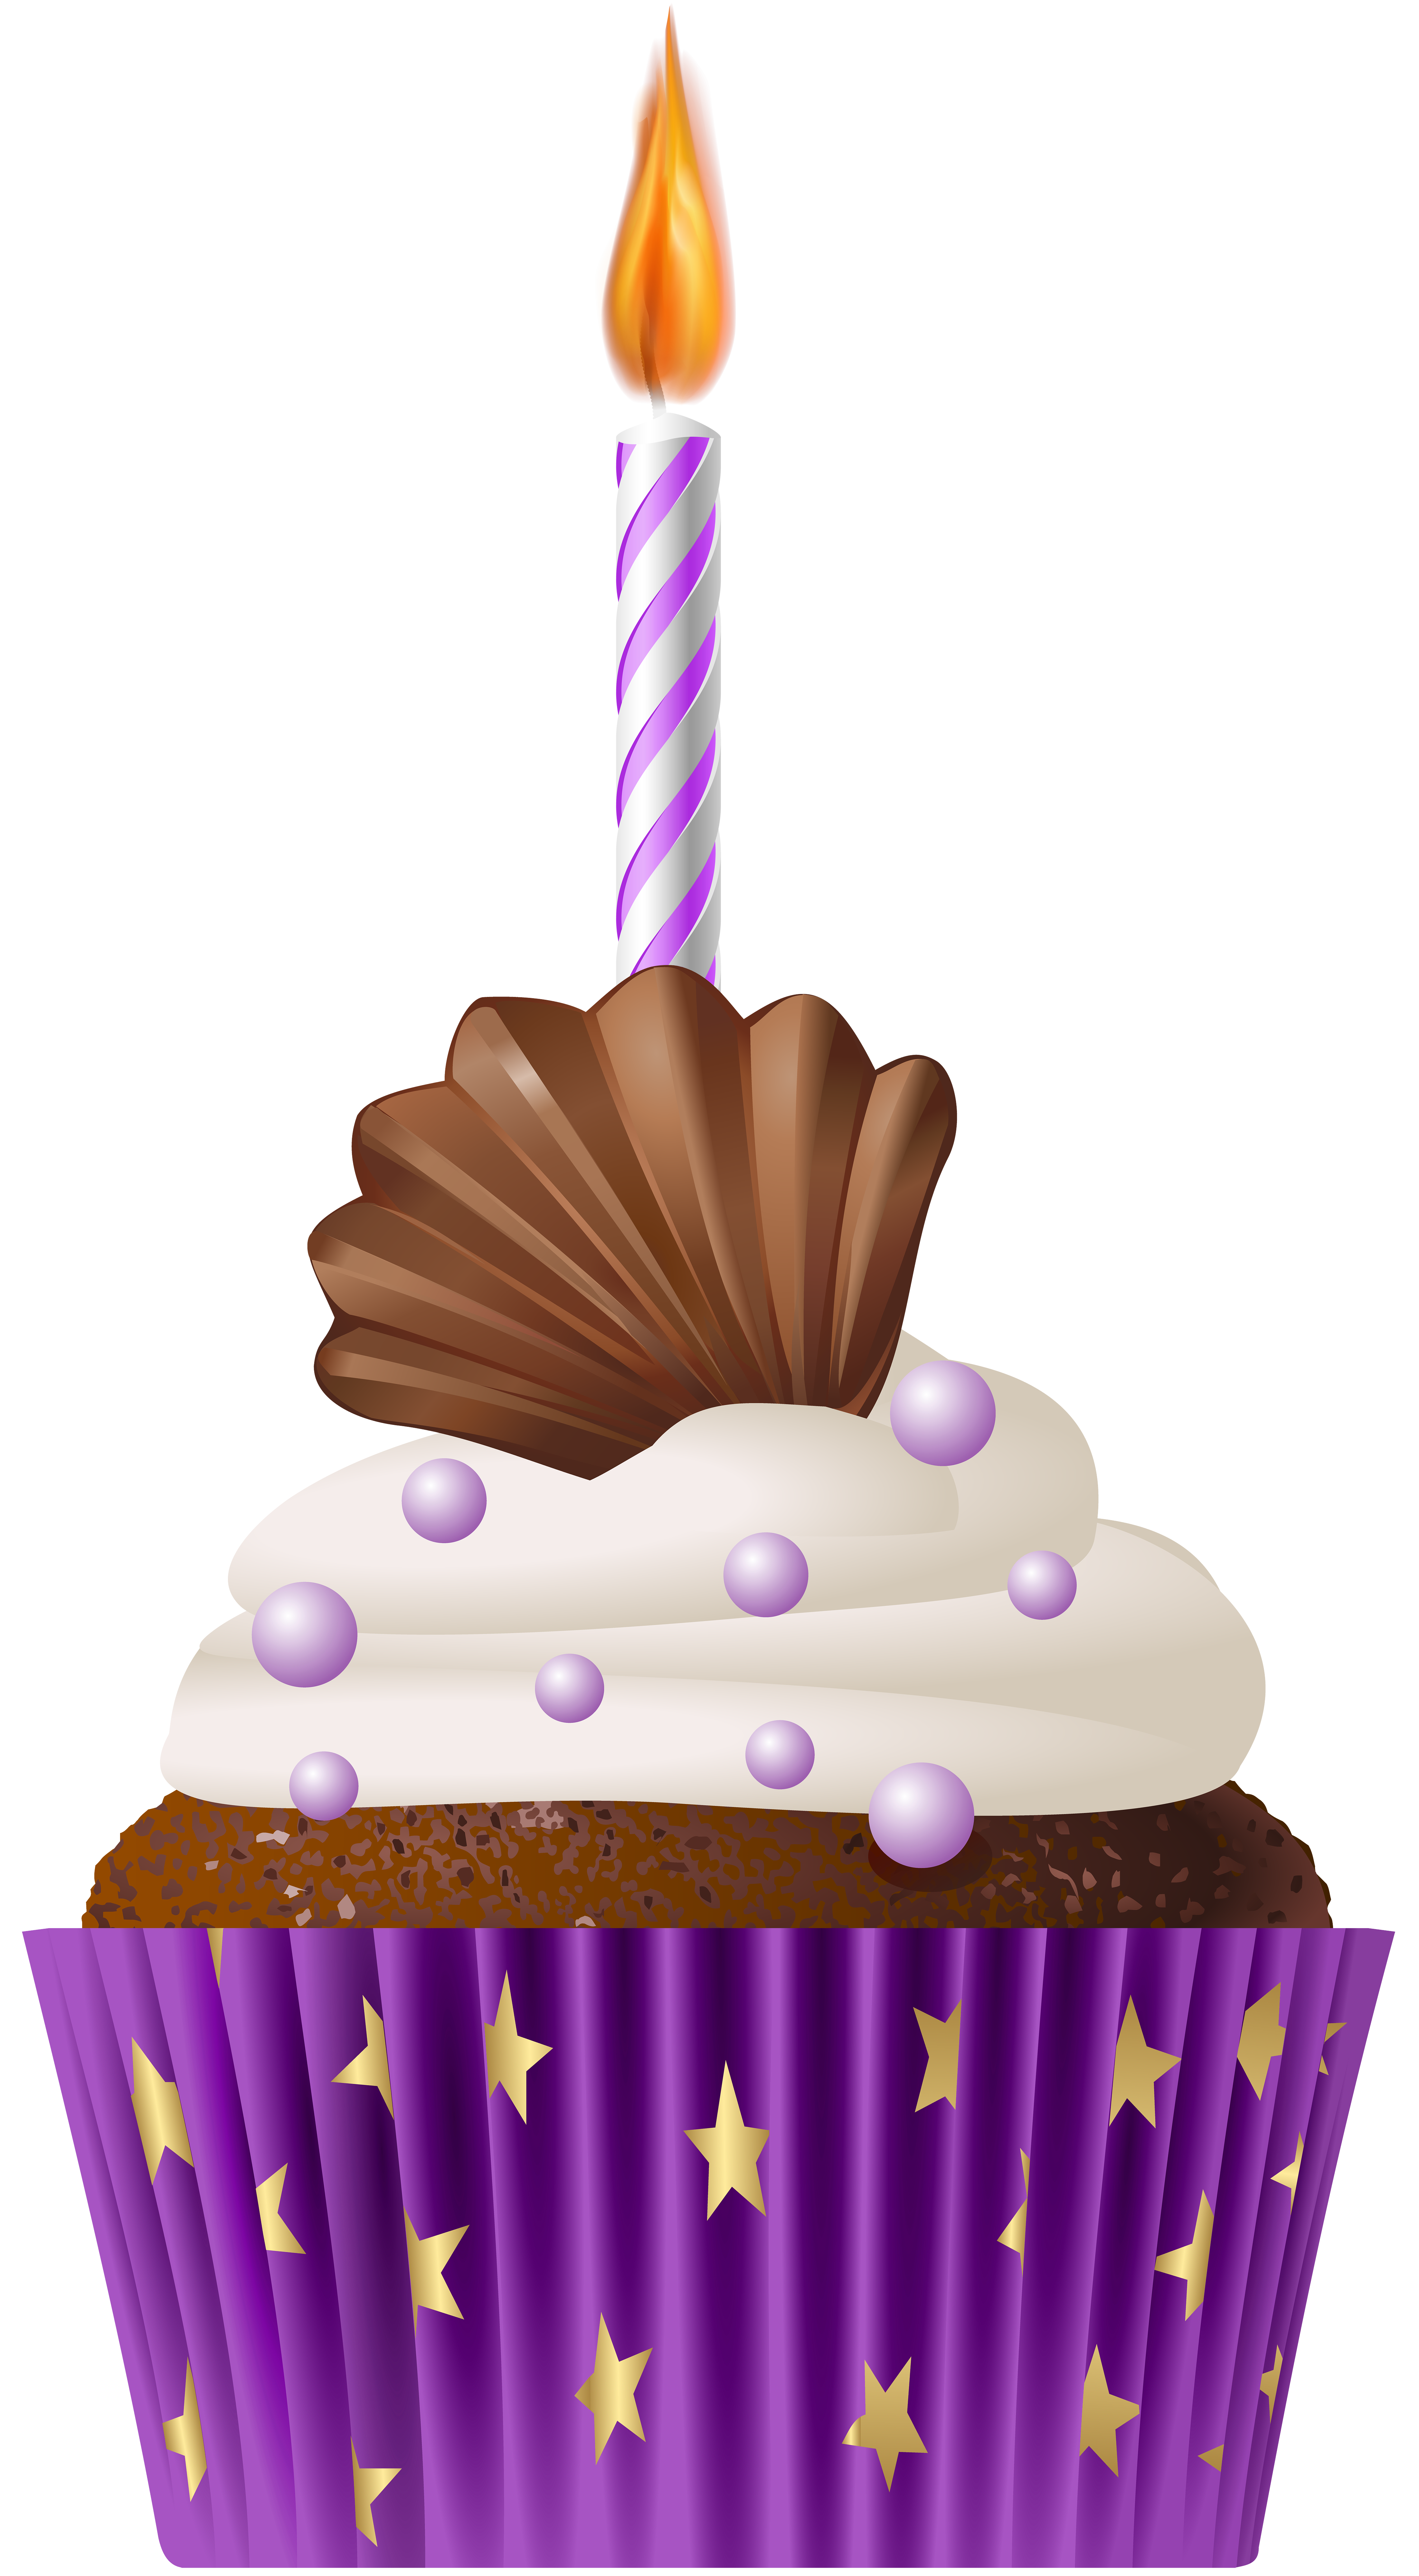 Birthday muffin purple with. Muffins clipart ckae